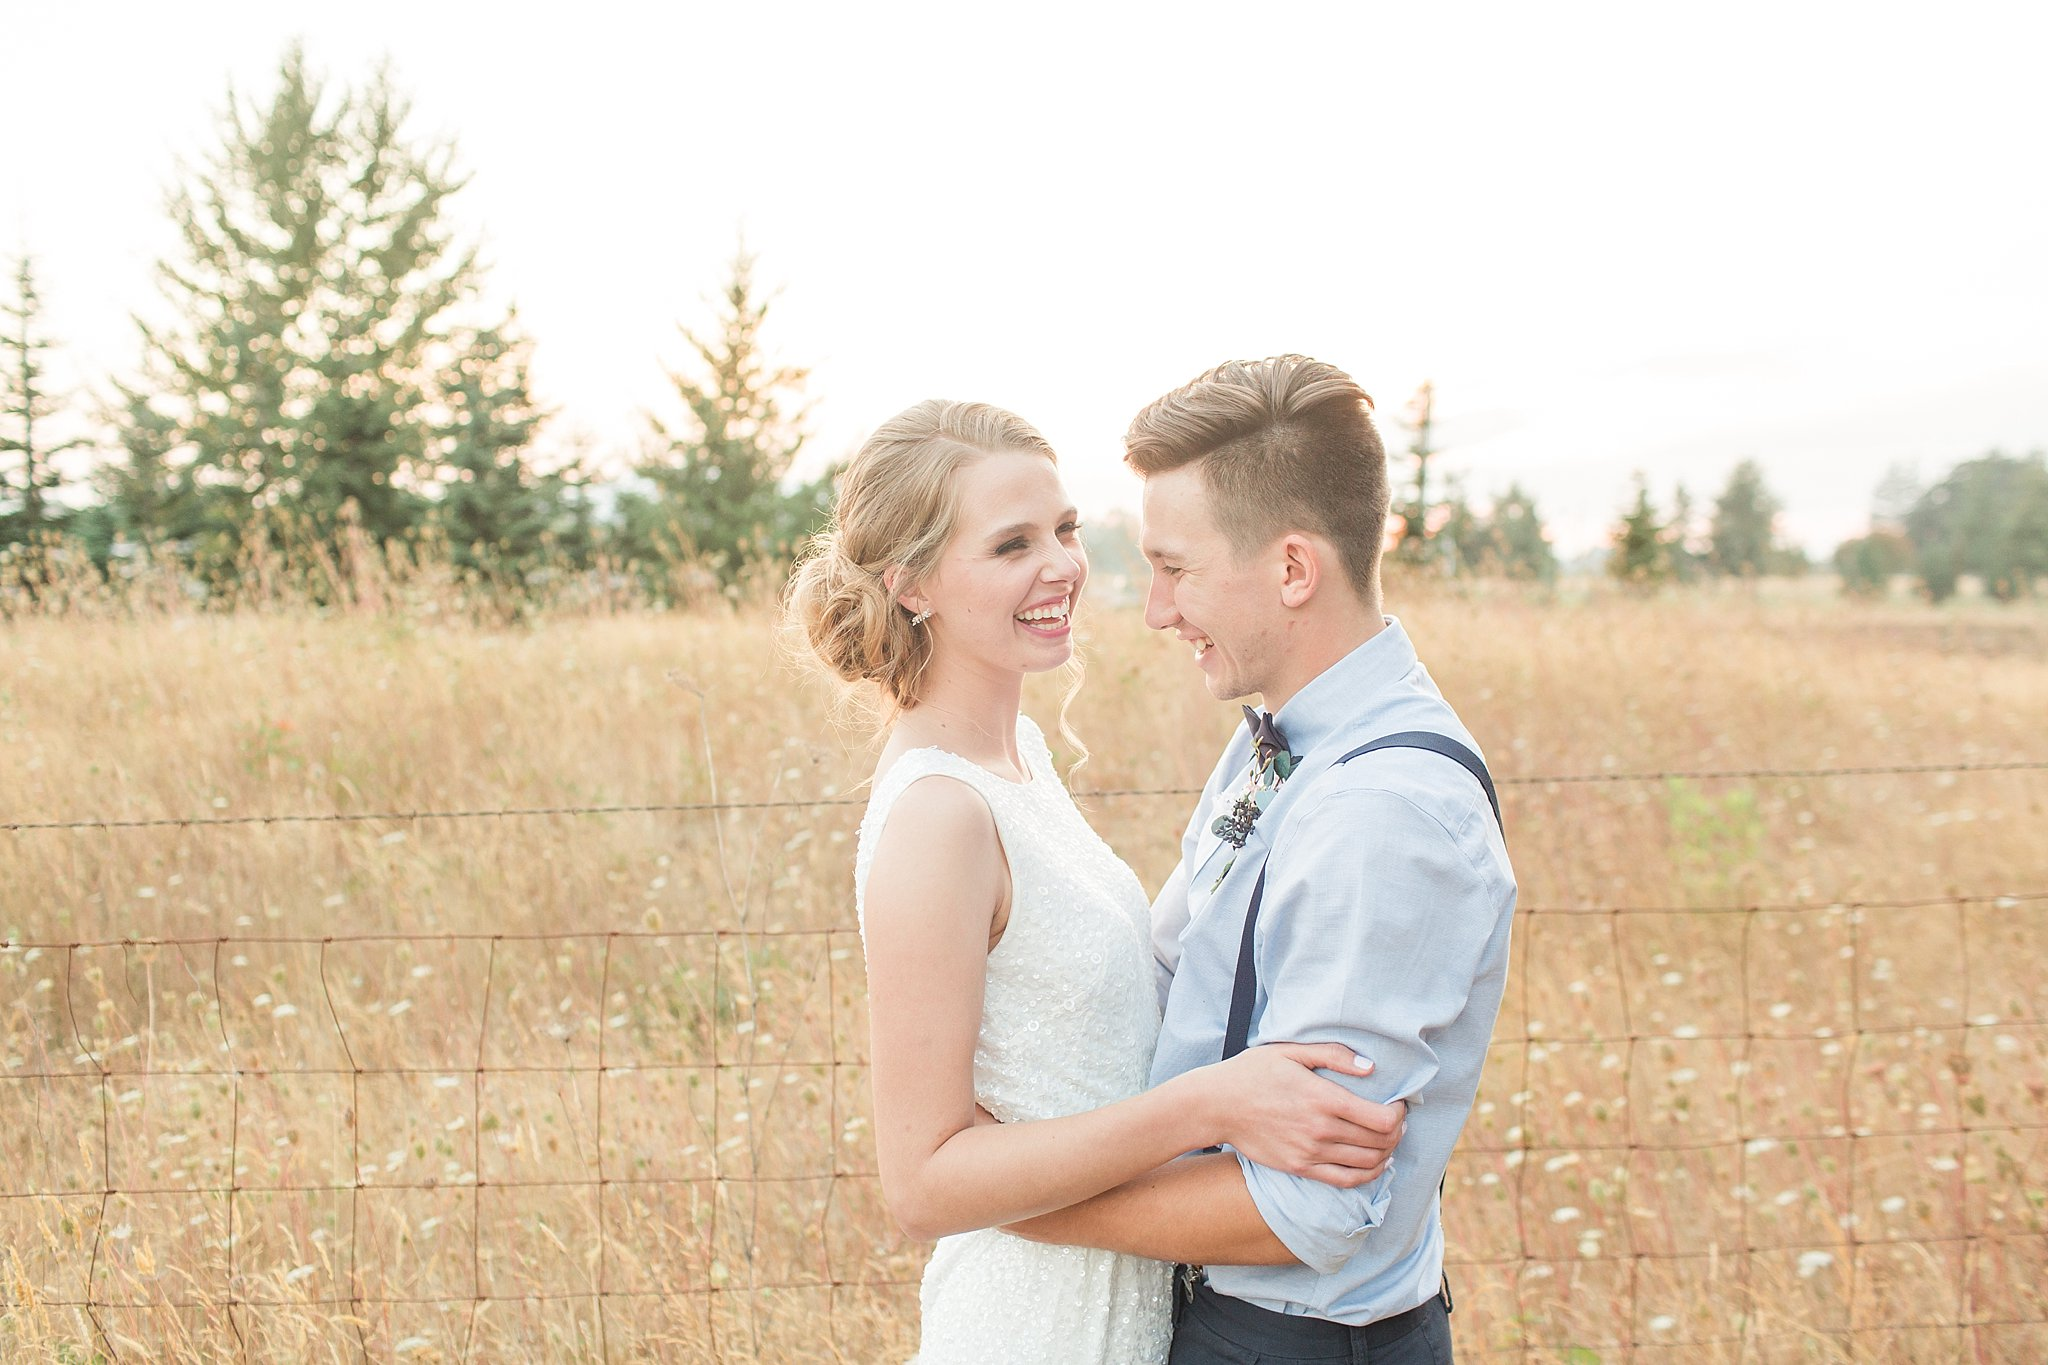 Jake & Sarah // Lebanon Oregon Wedding - Rebekah Leona